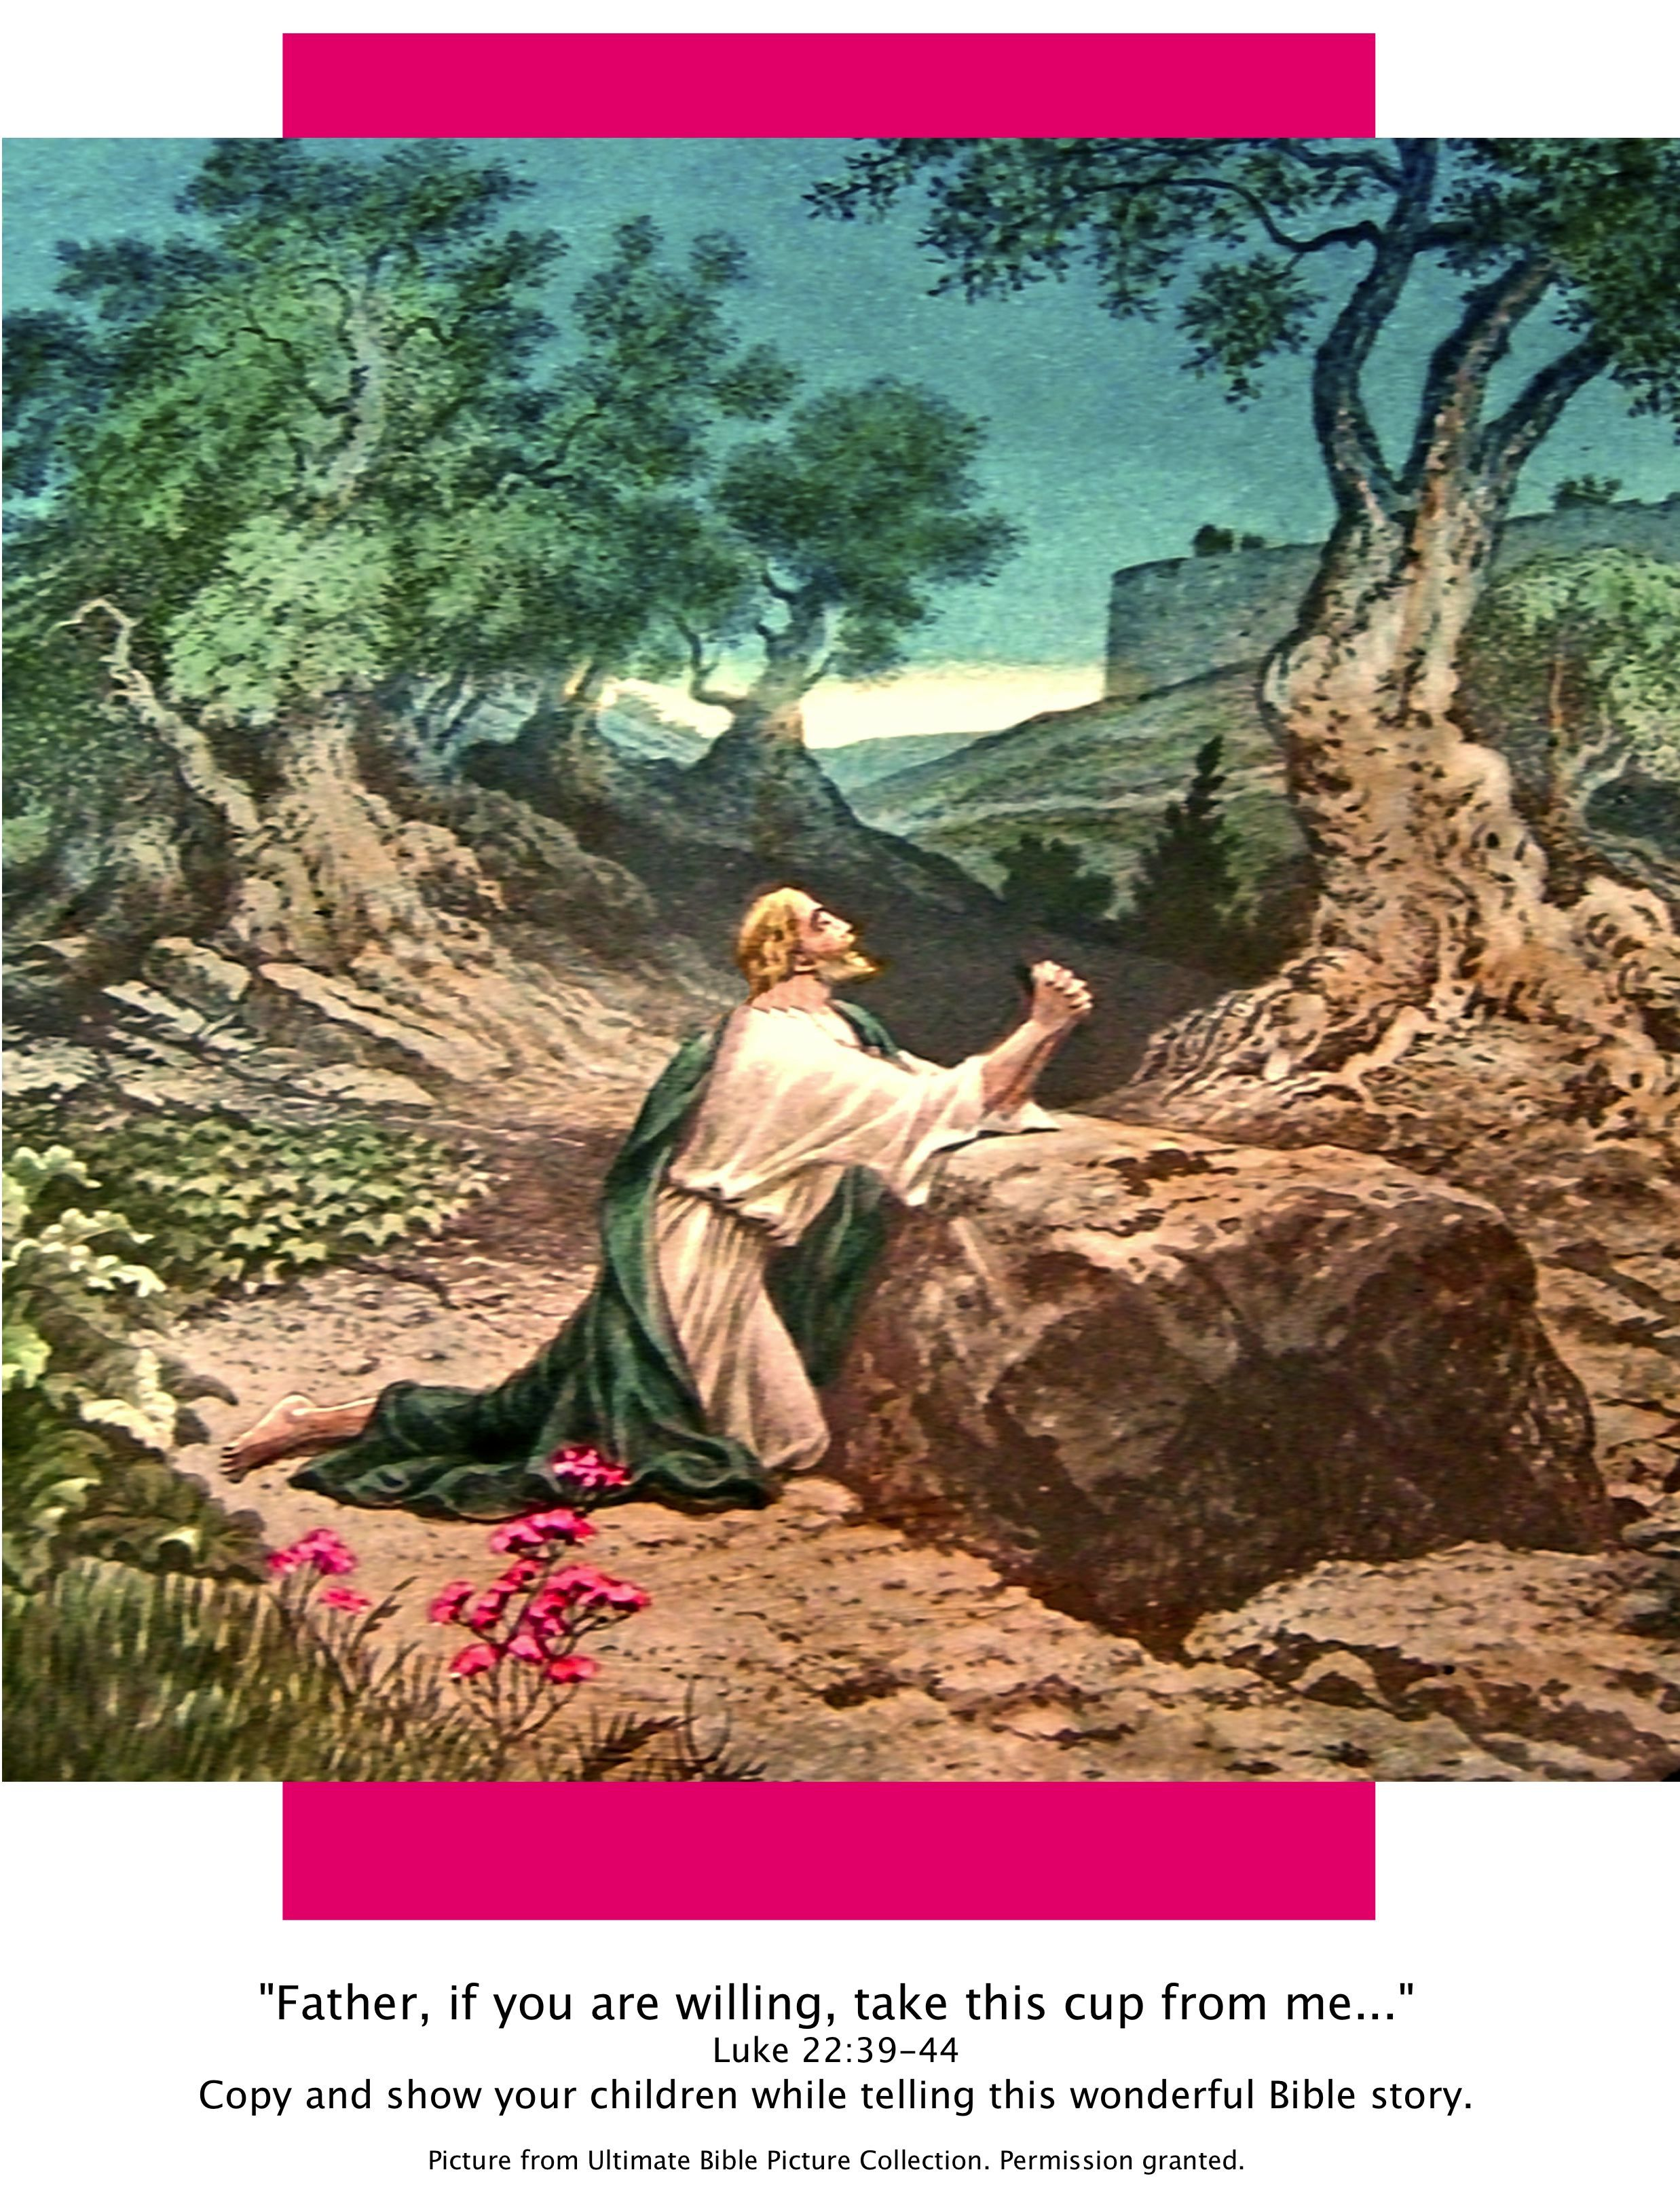 Bible Story Picture Of Garden Of Gethsemane Lk 22 39 44 Show Your Children While Telling This